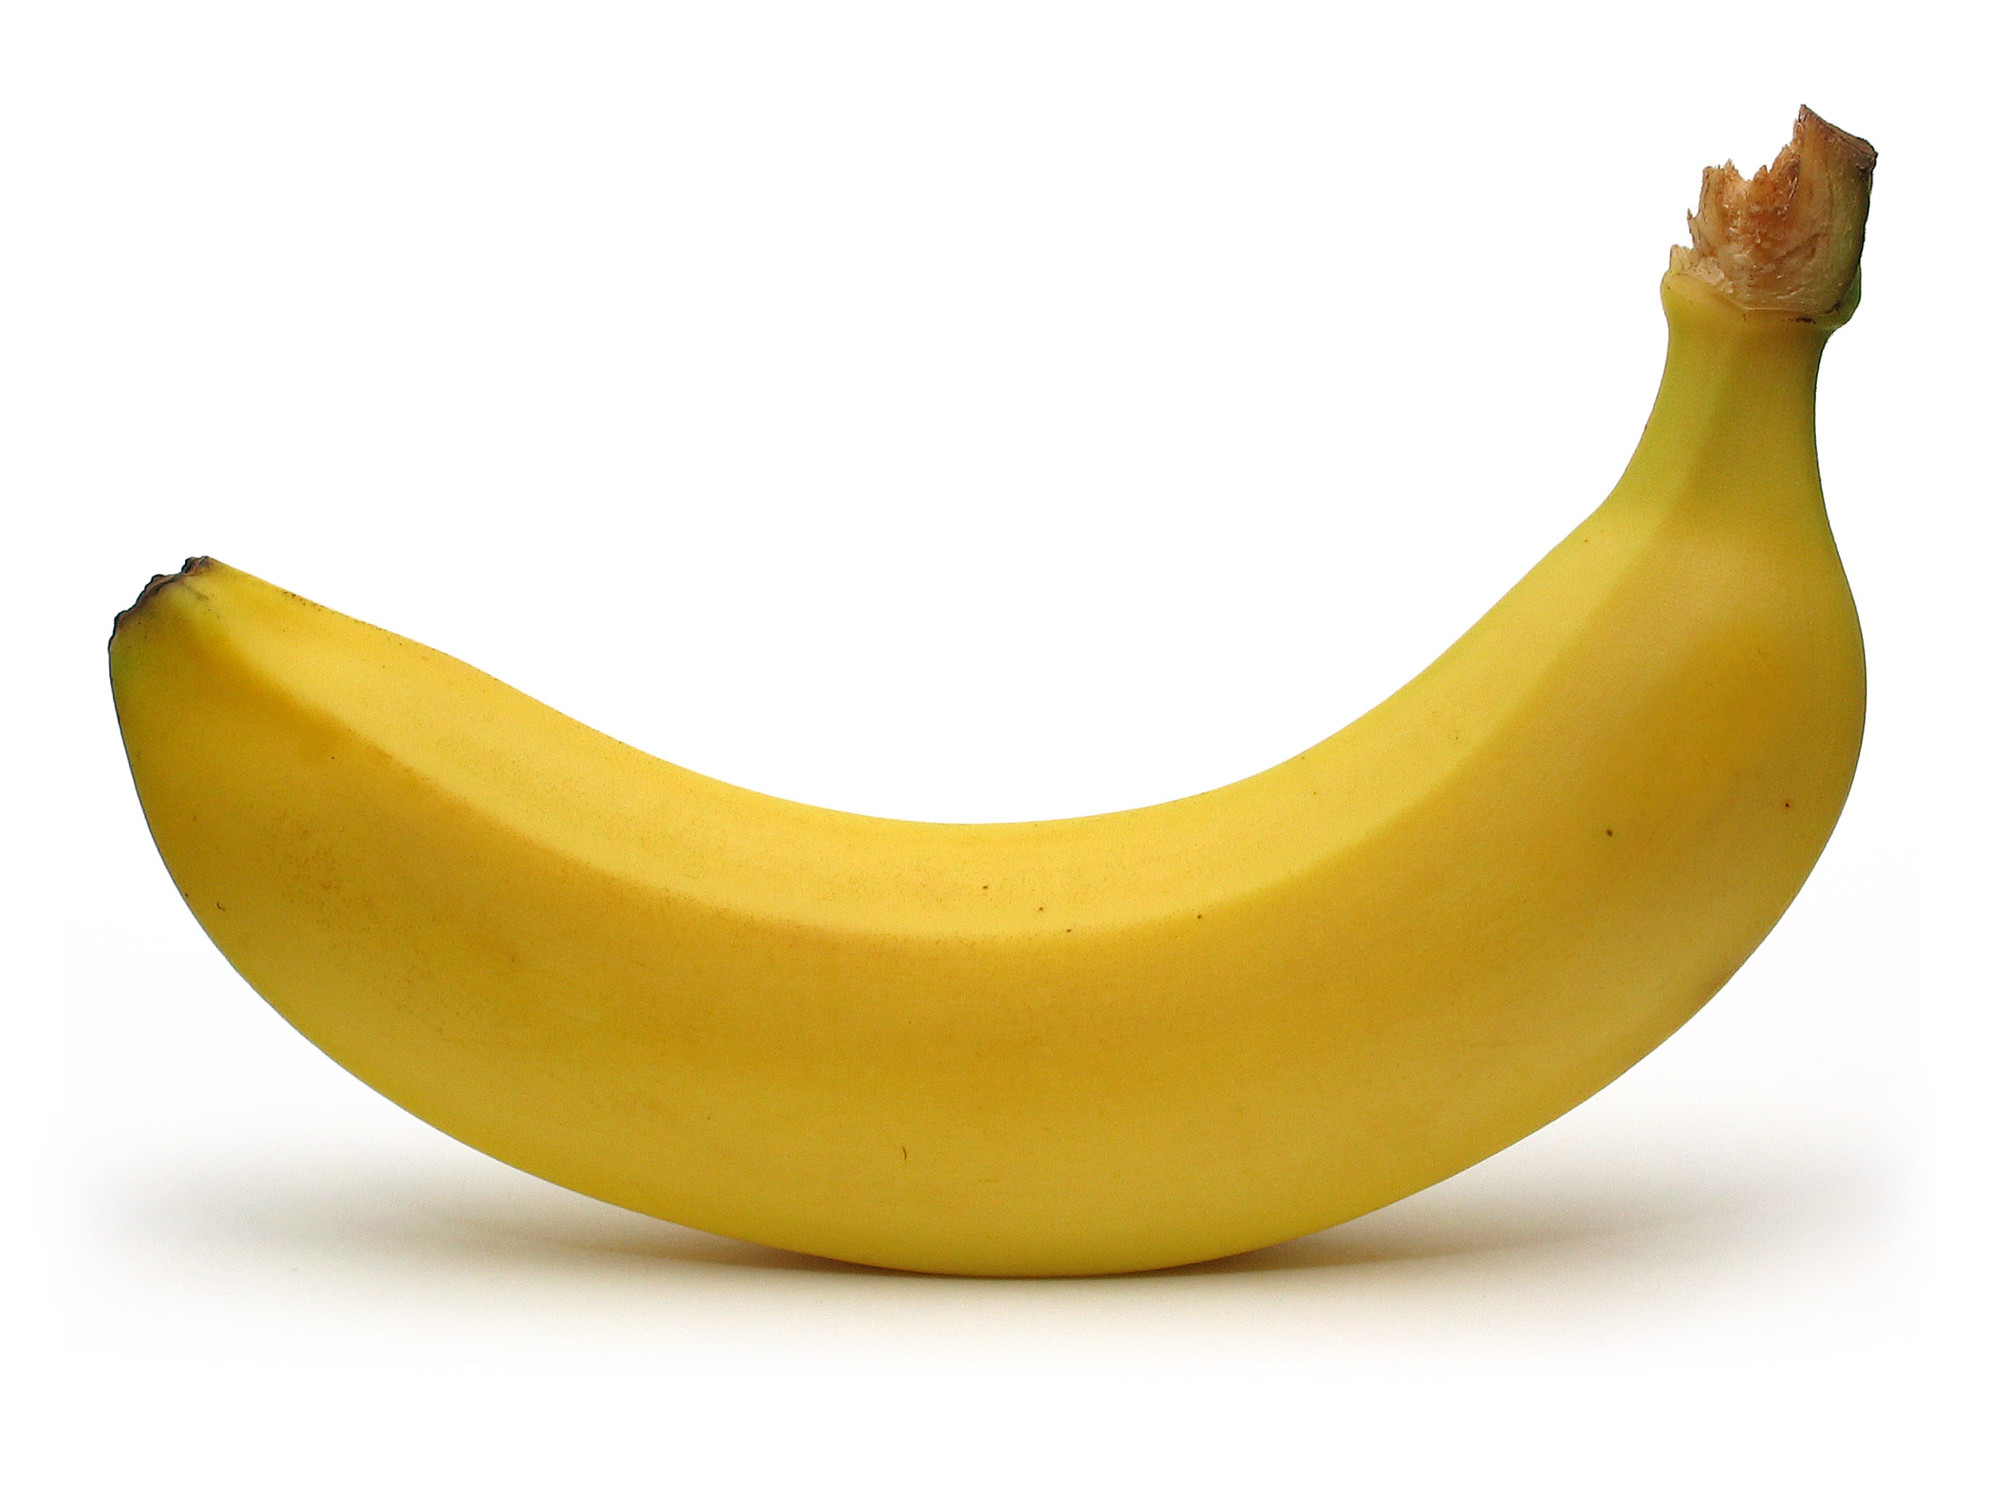 Elongated banana. Pictures freaking news